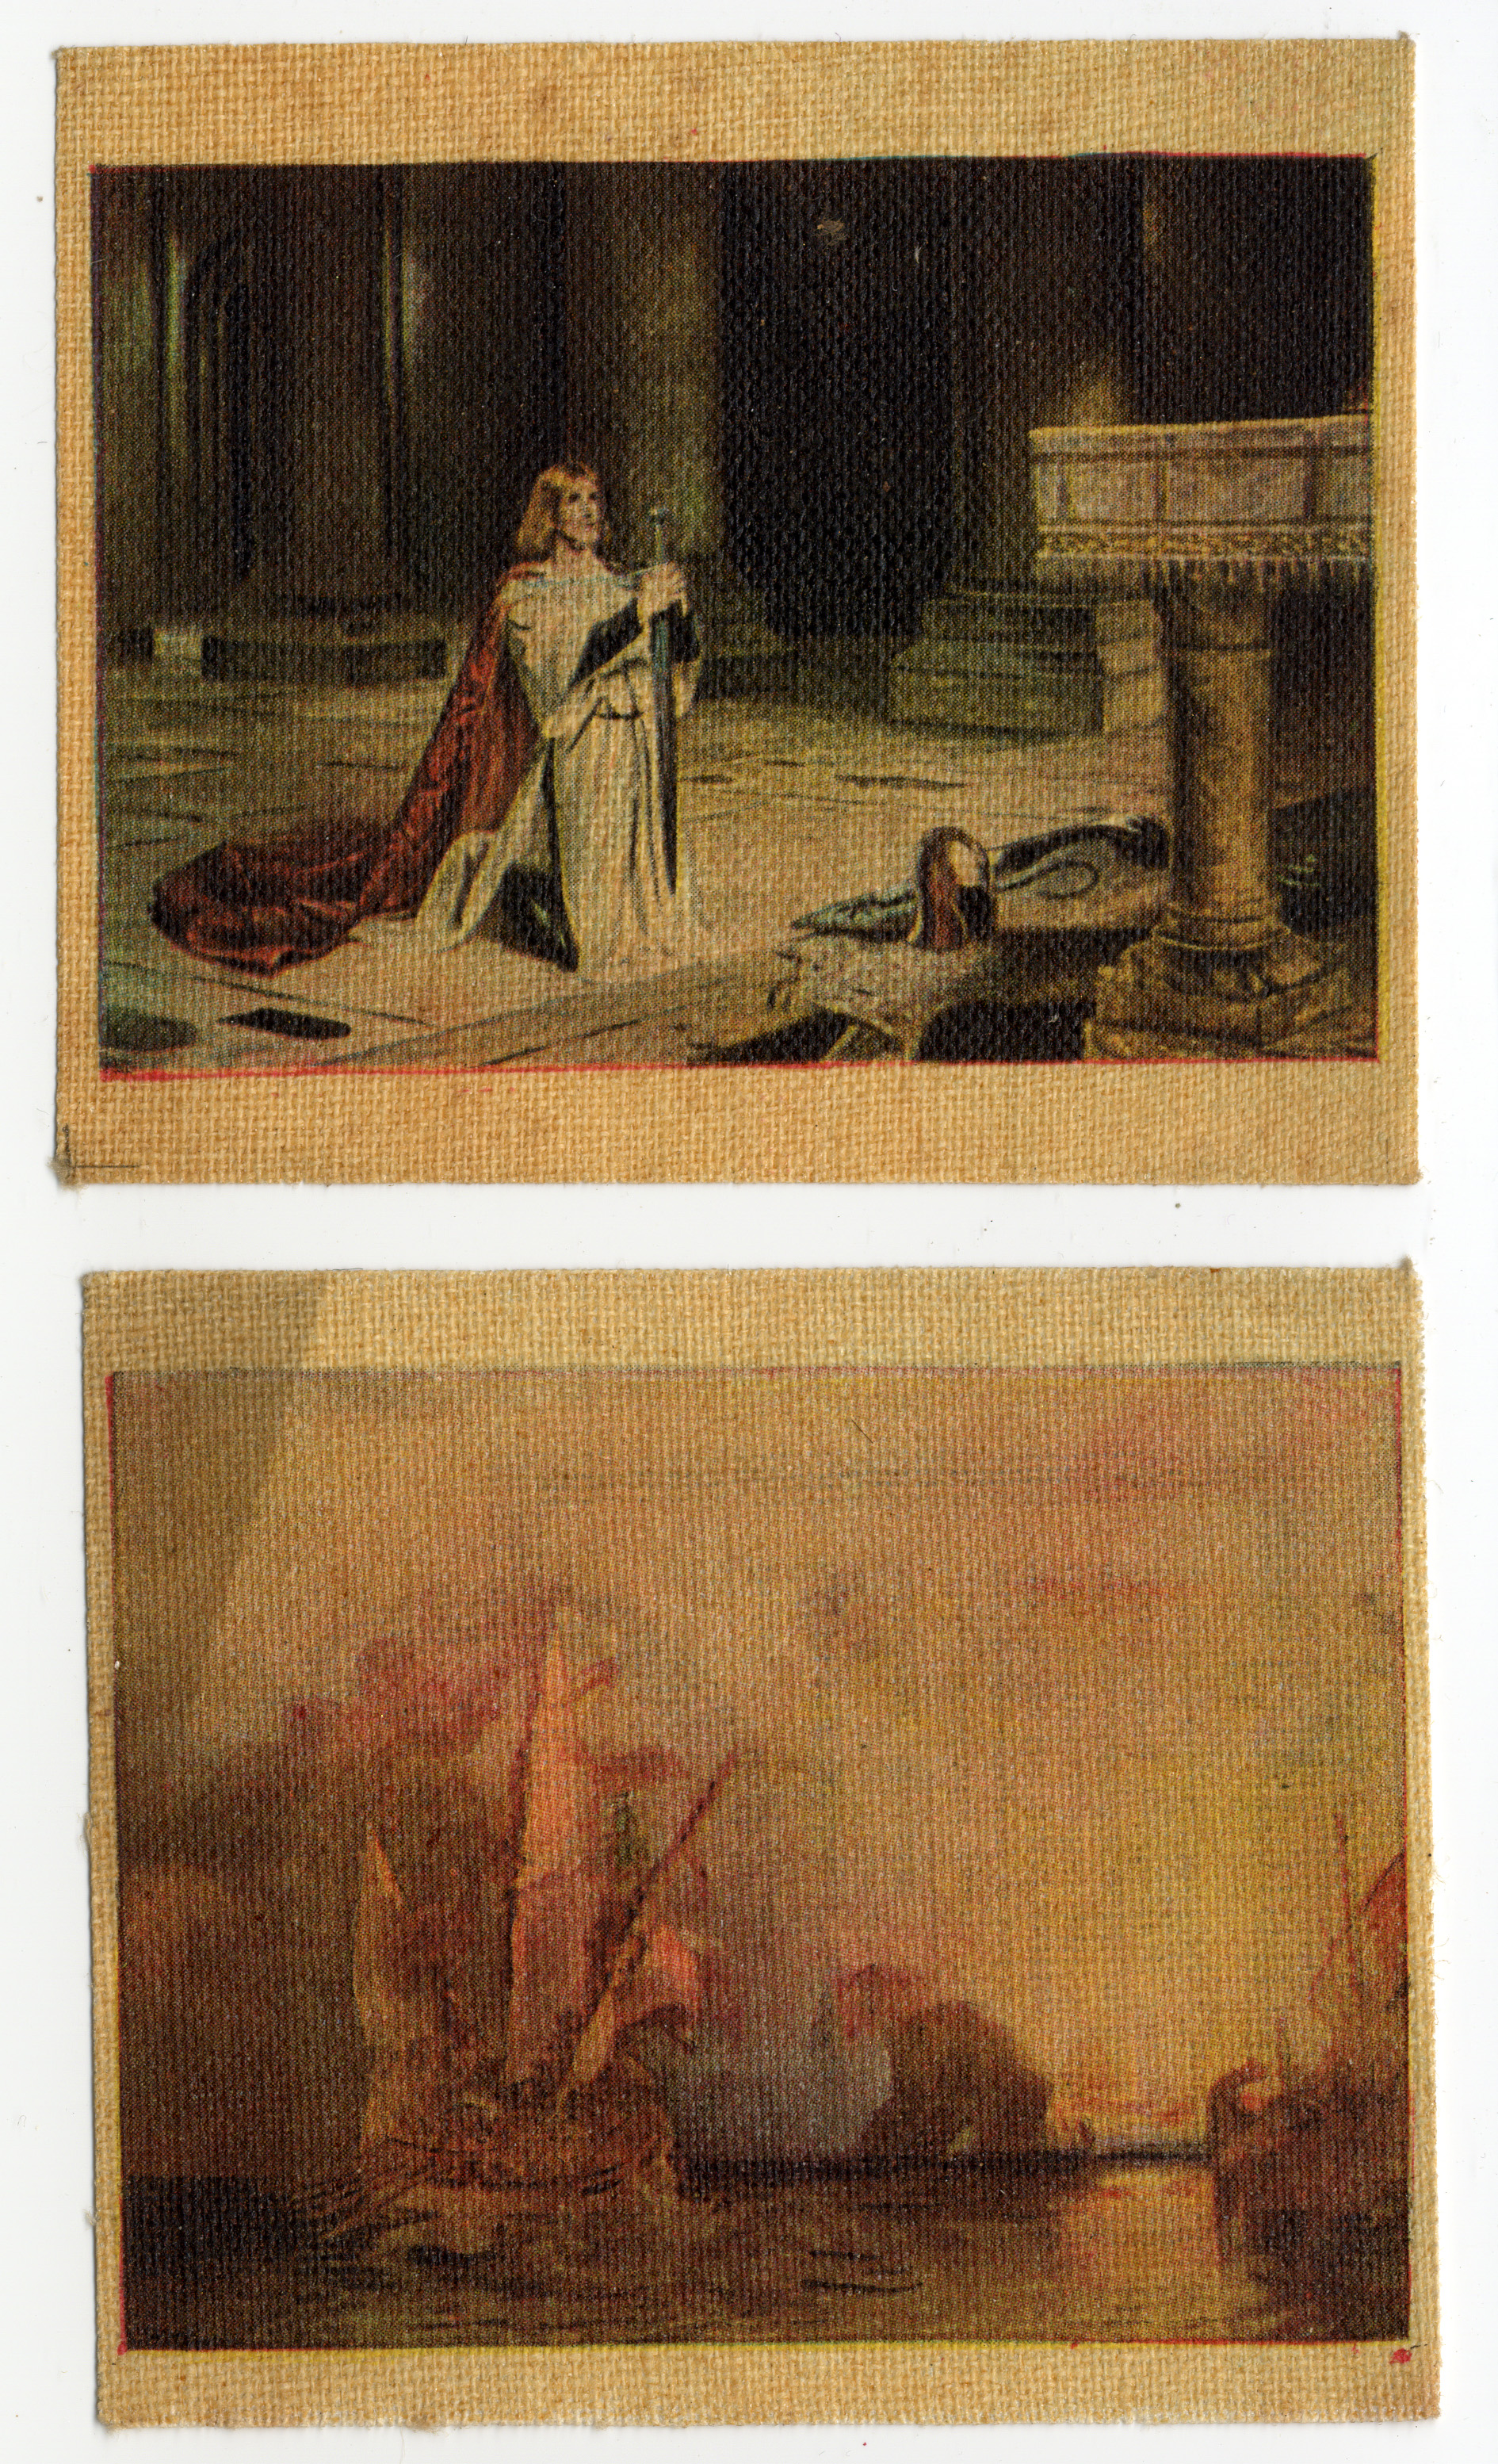 Cigarette Cards: The vigil by John Pettie and Ulysees deriding Polyphemus by JW Turner